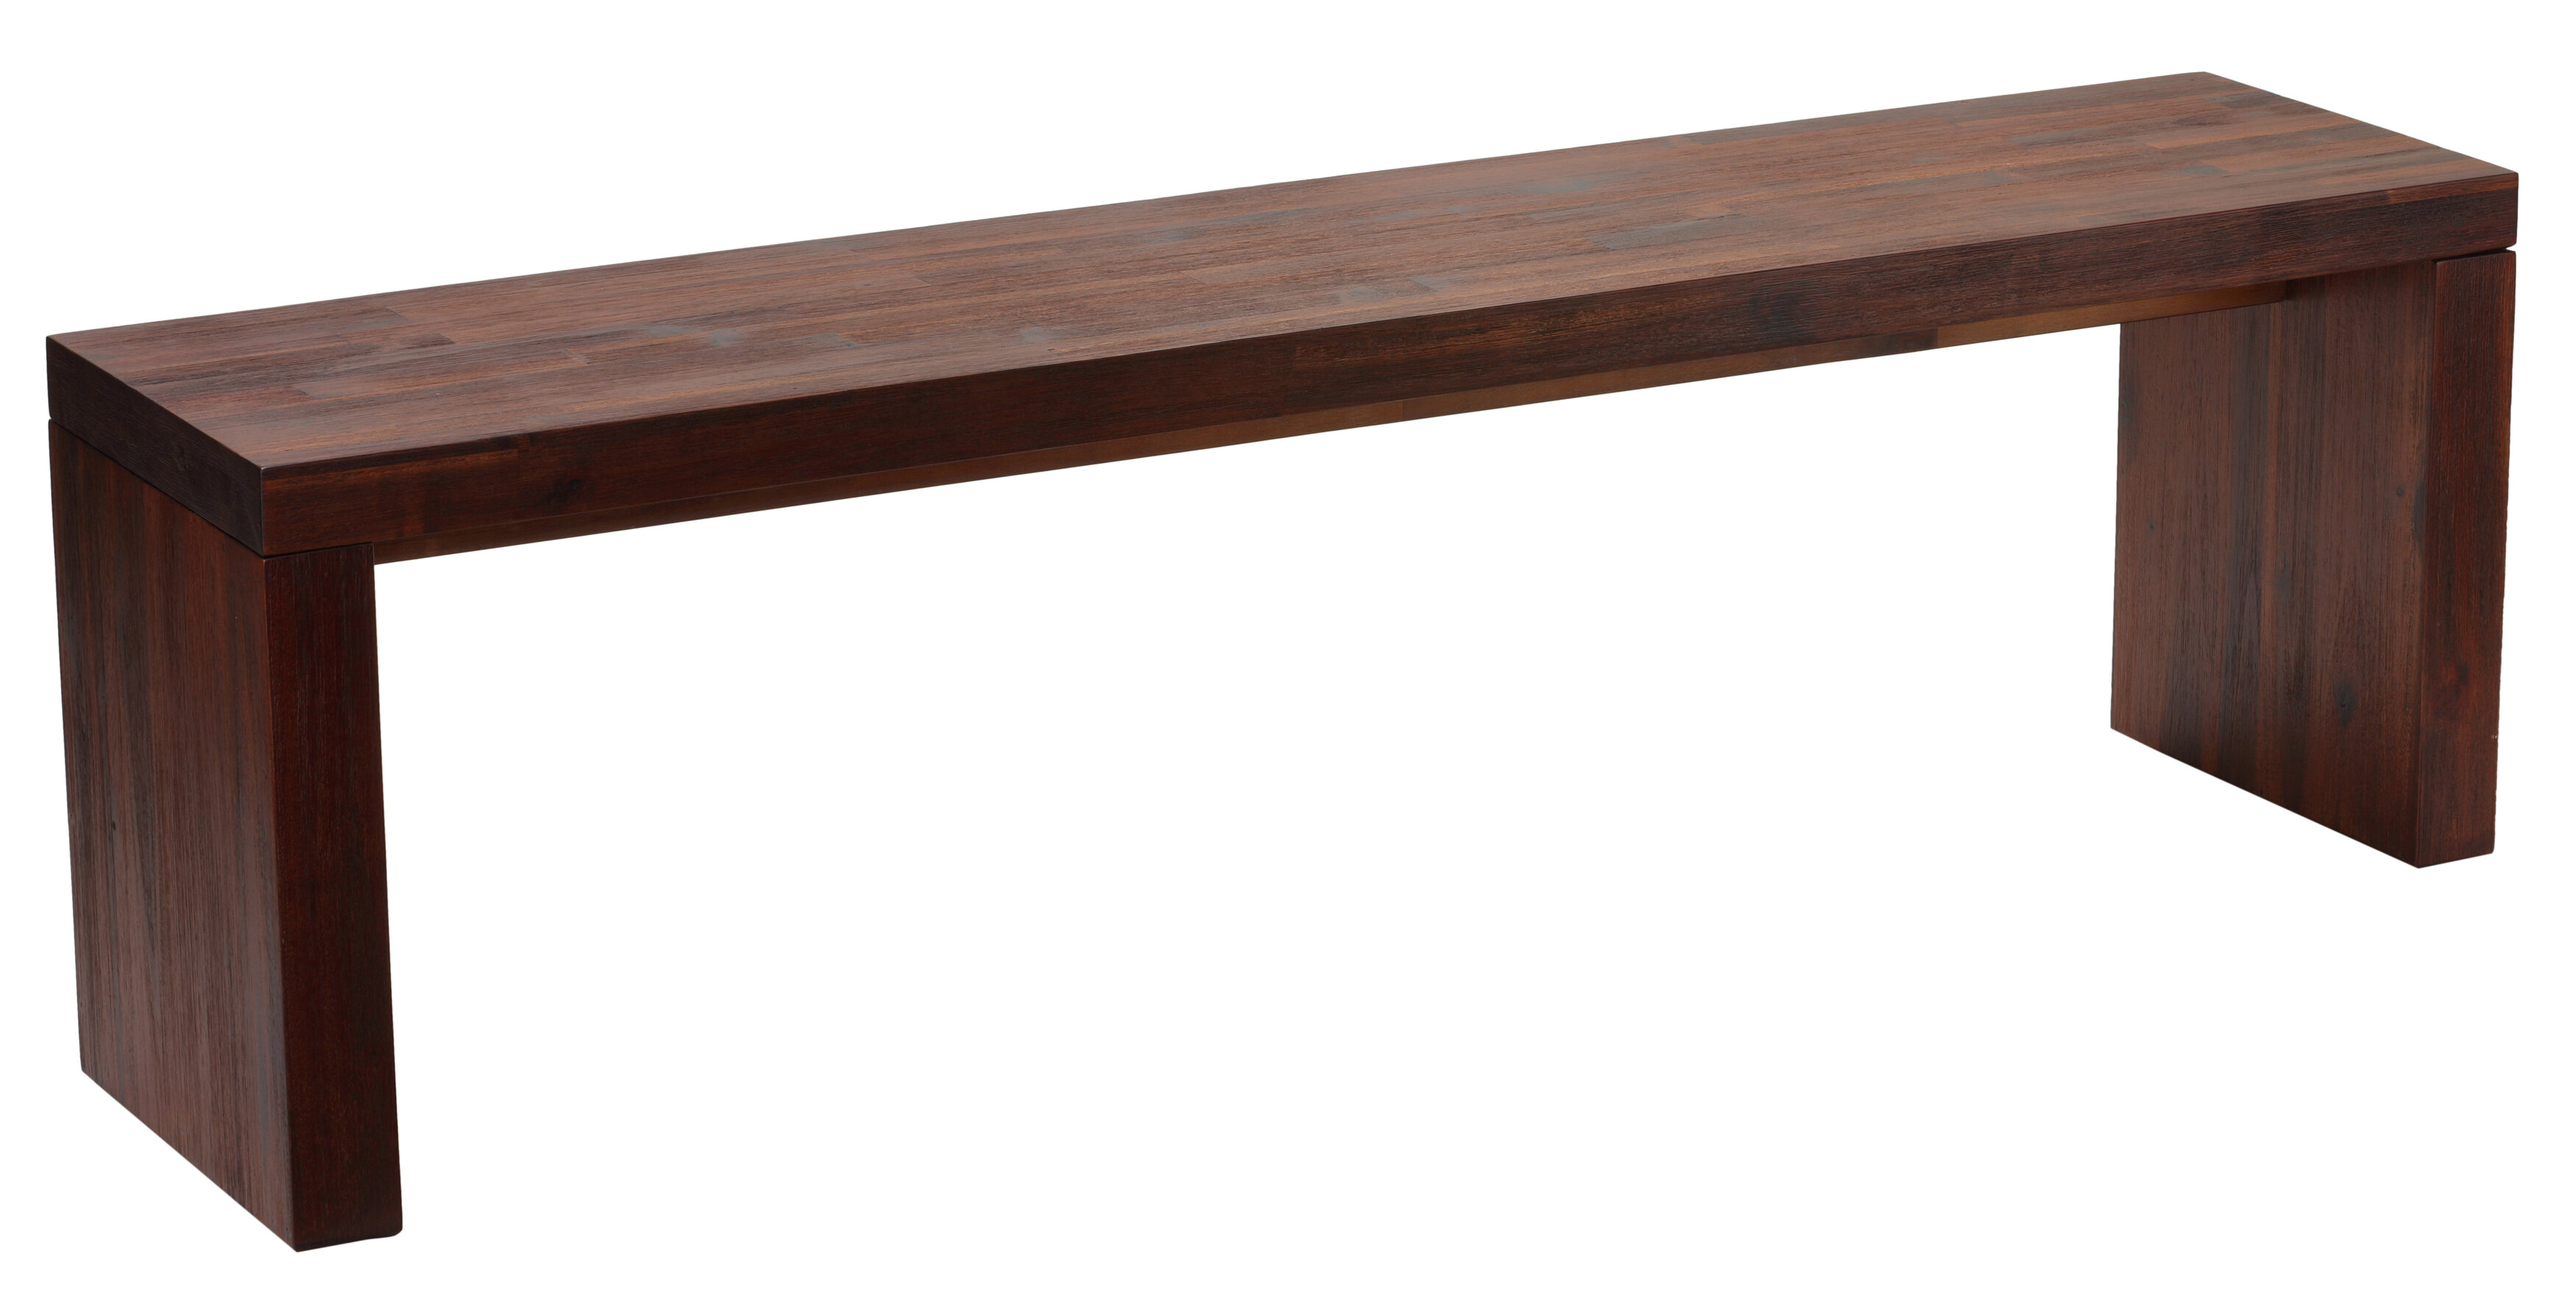 Stupendous Hebden Solid Wood Bench Alphanode Cool Chair Designs And Ideas Alphanodeonline